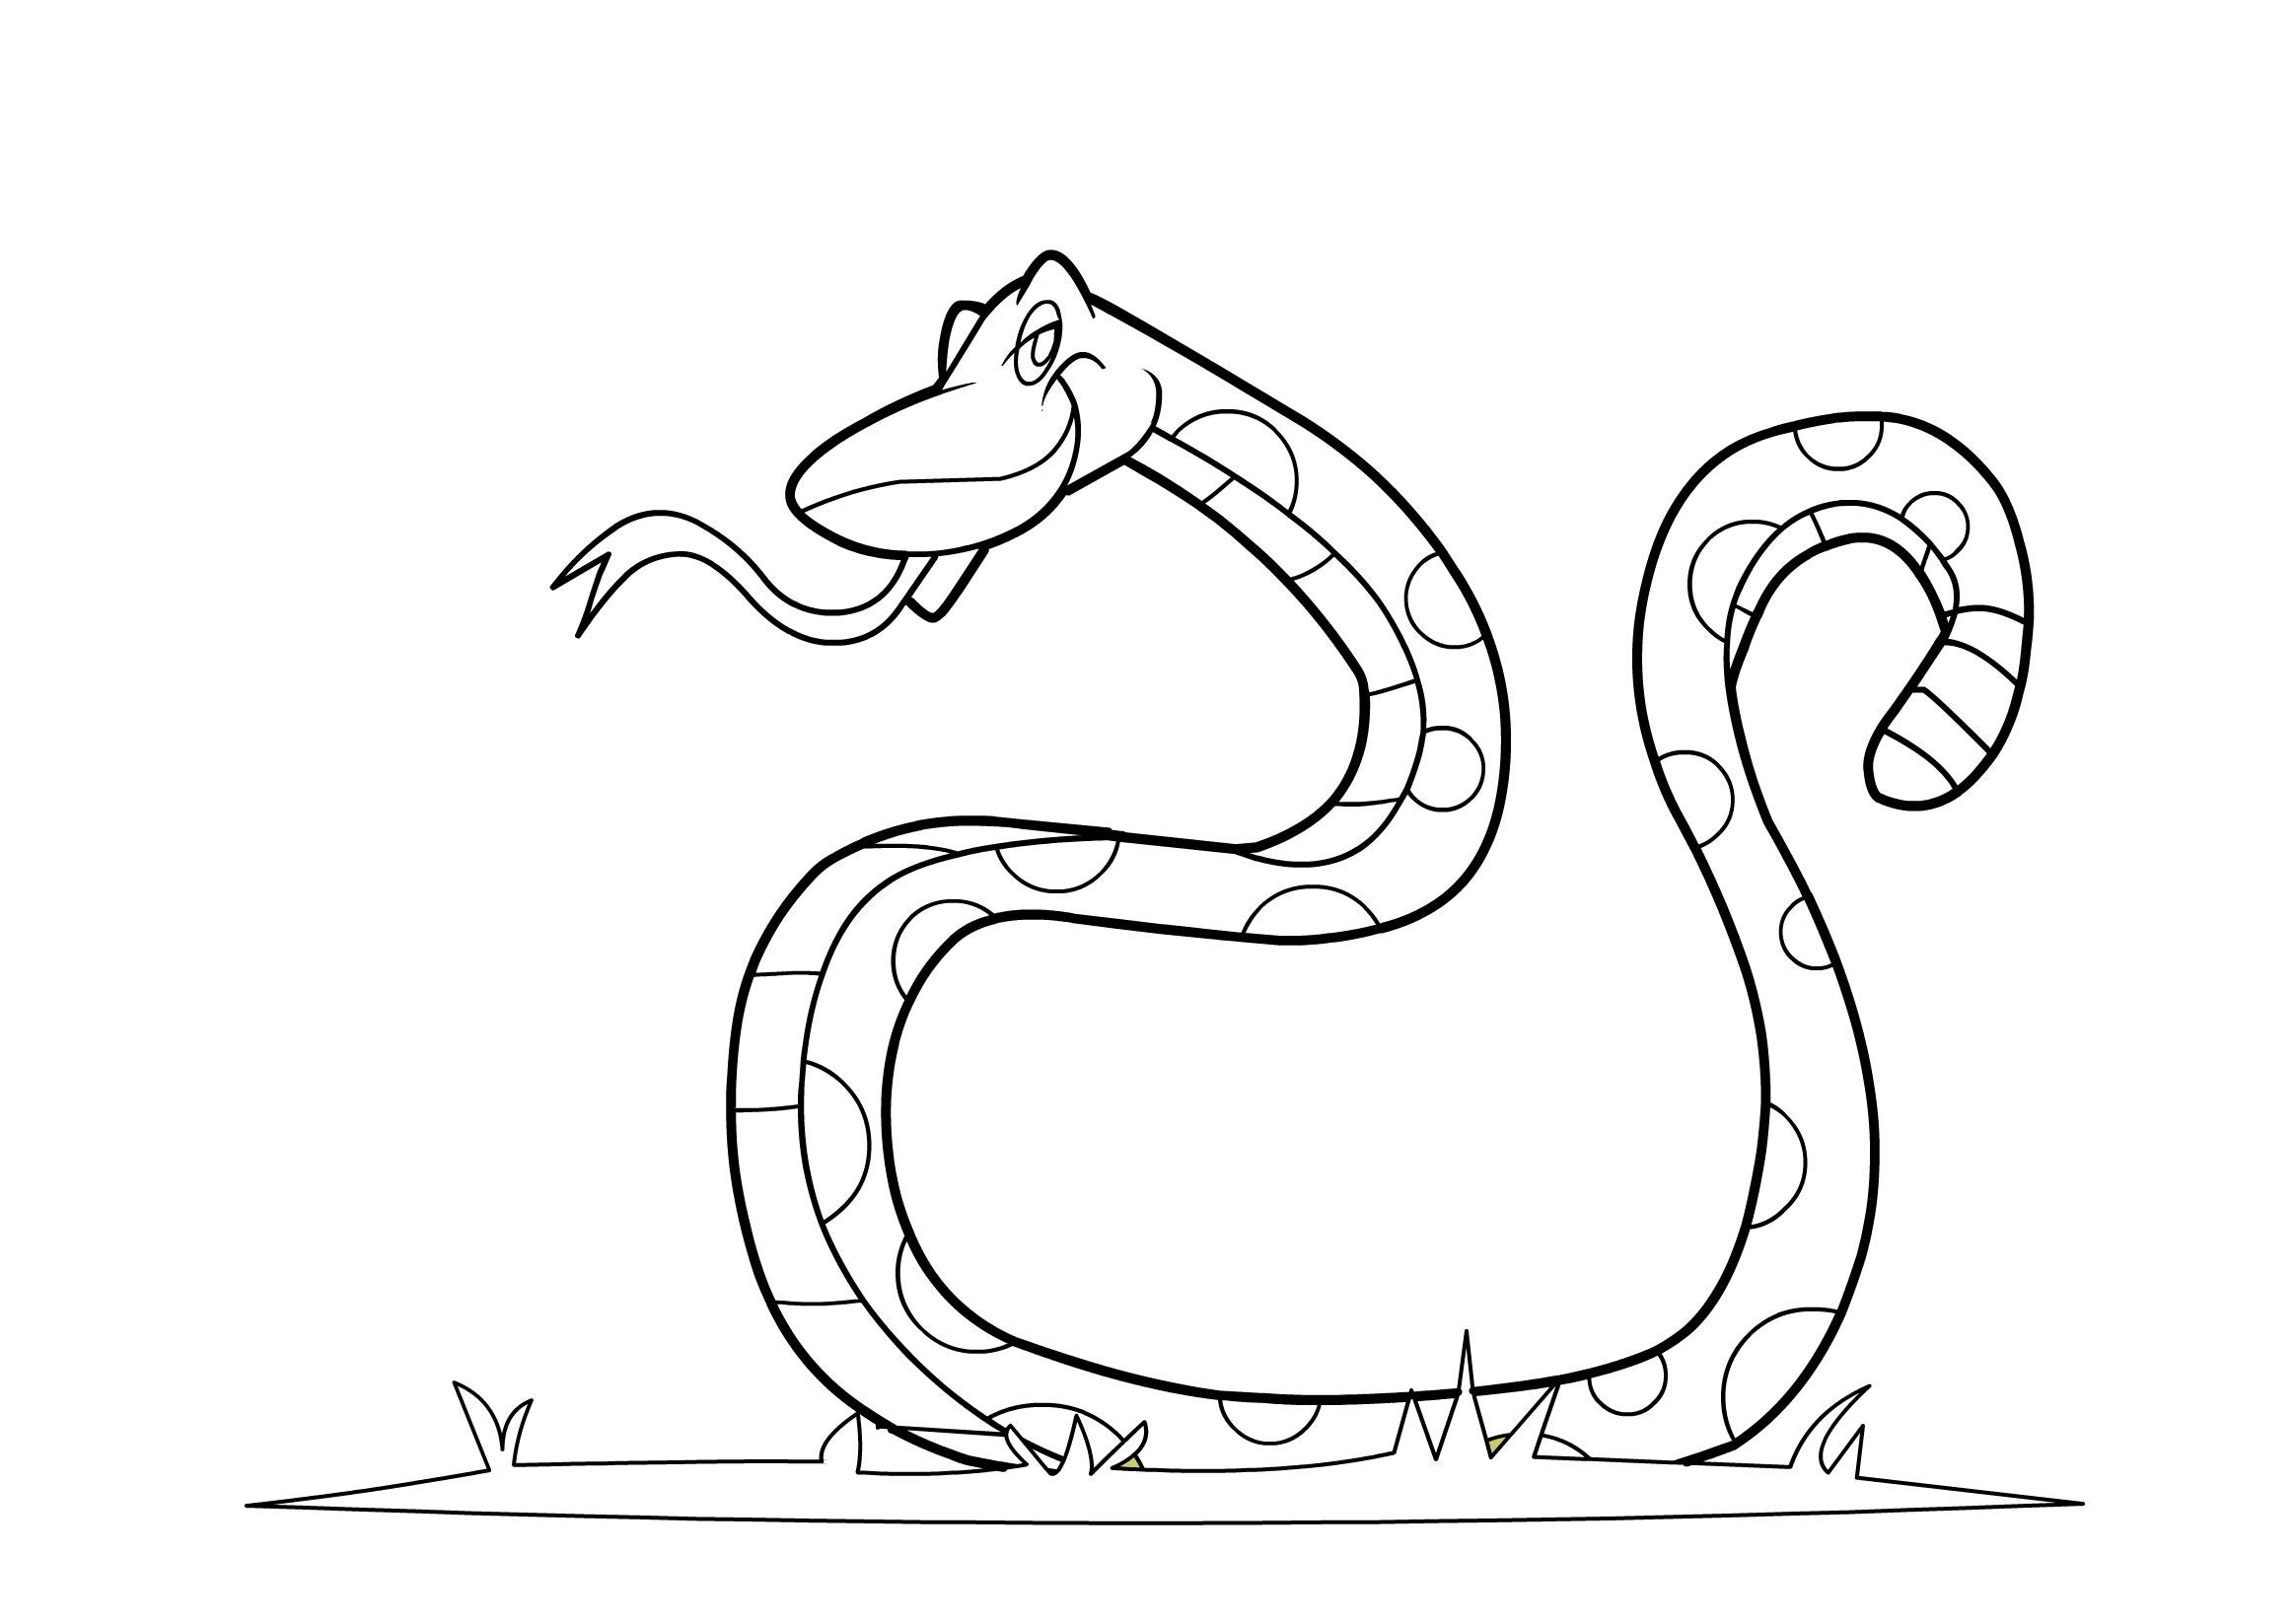 snake pictures to color and print cool snakes coloring pages coloring home pictures print color to and snake